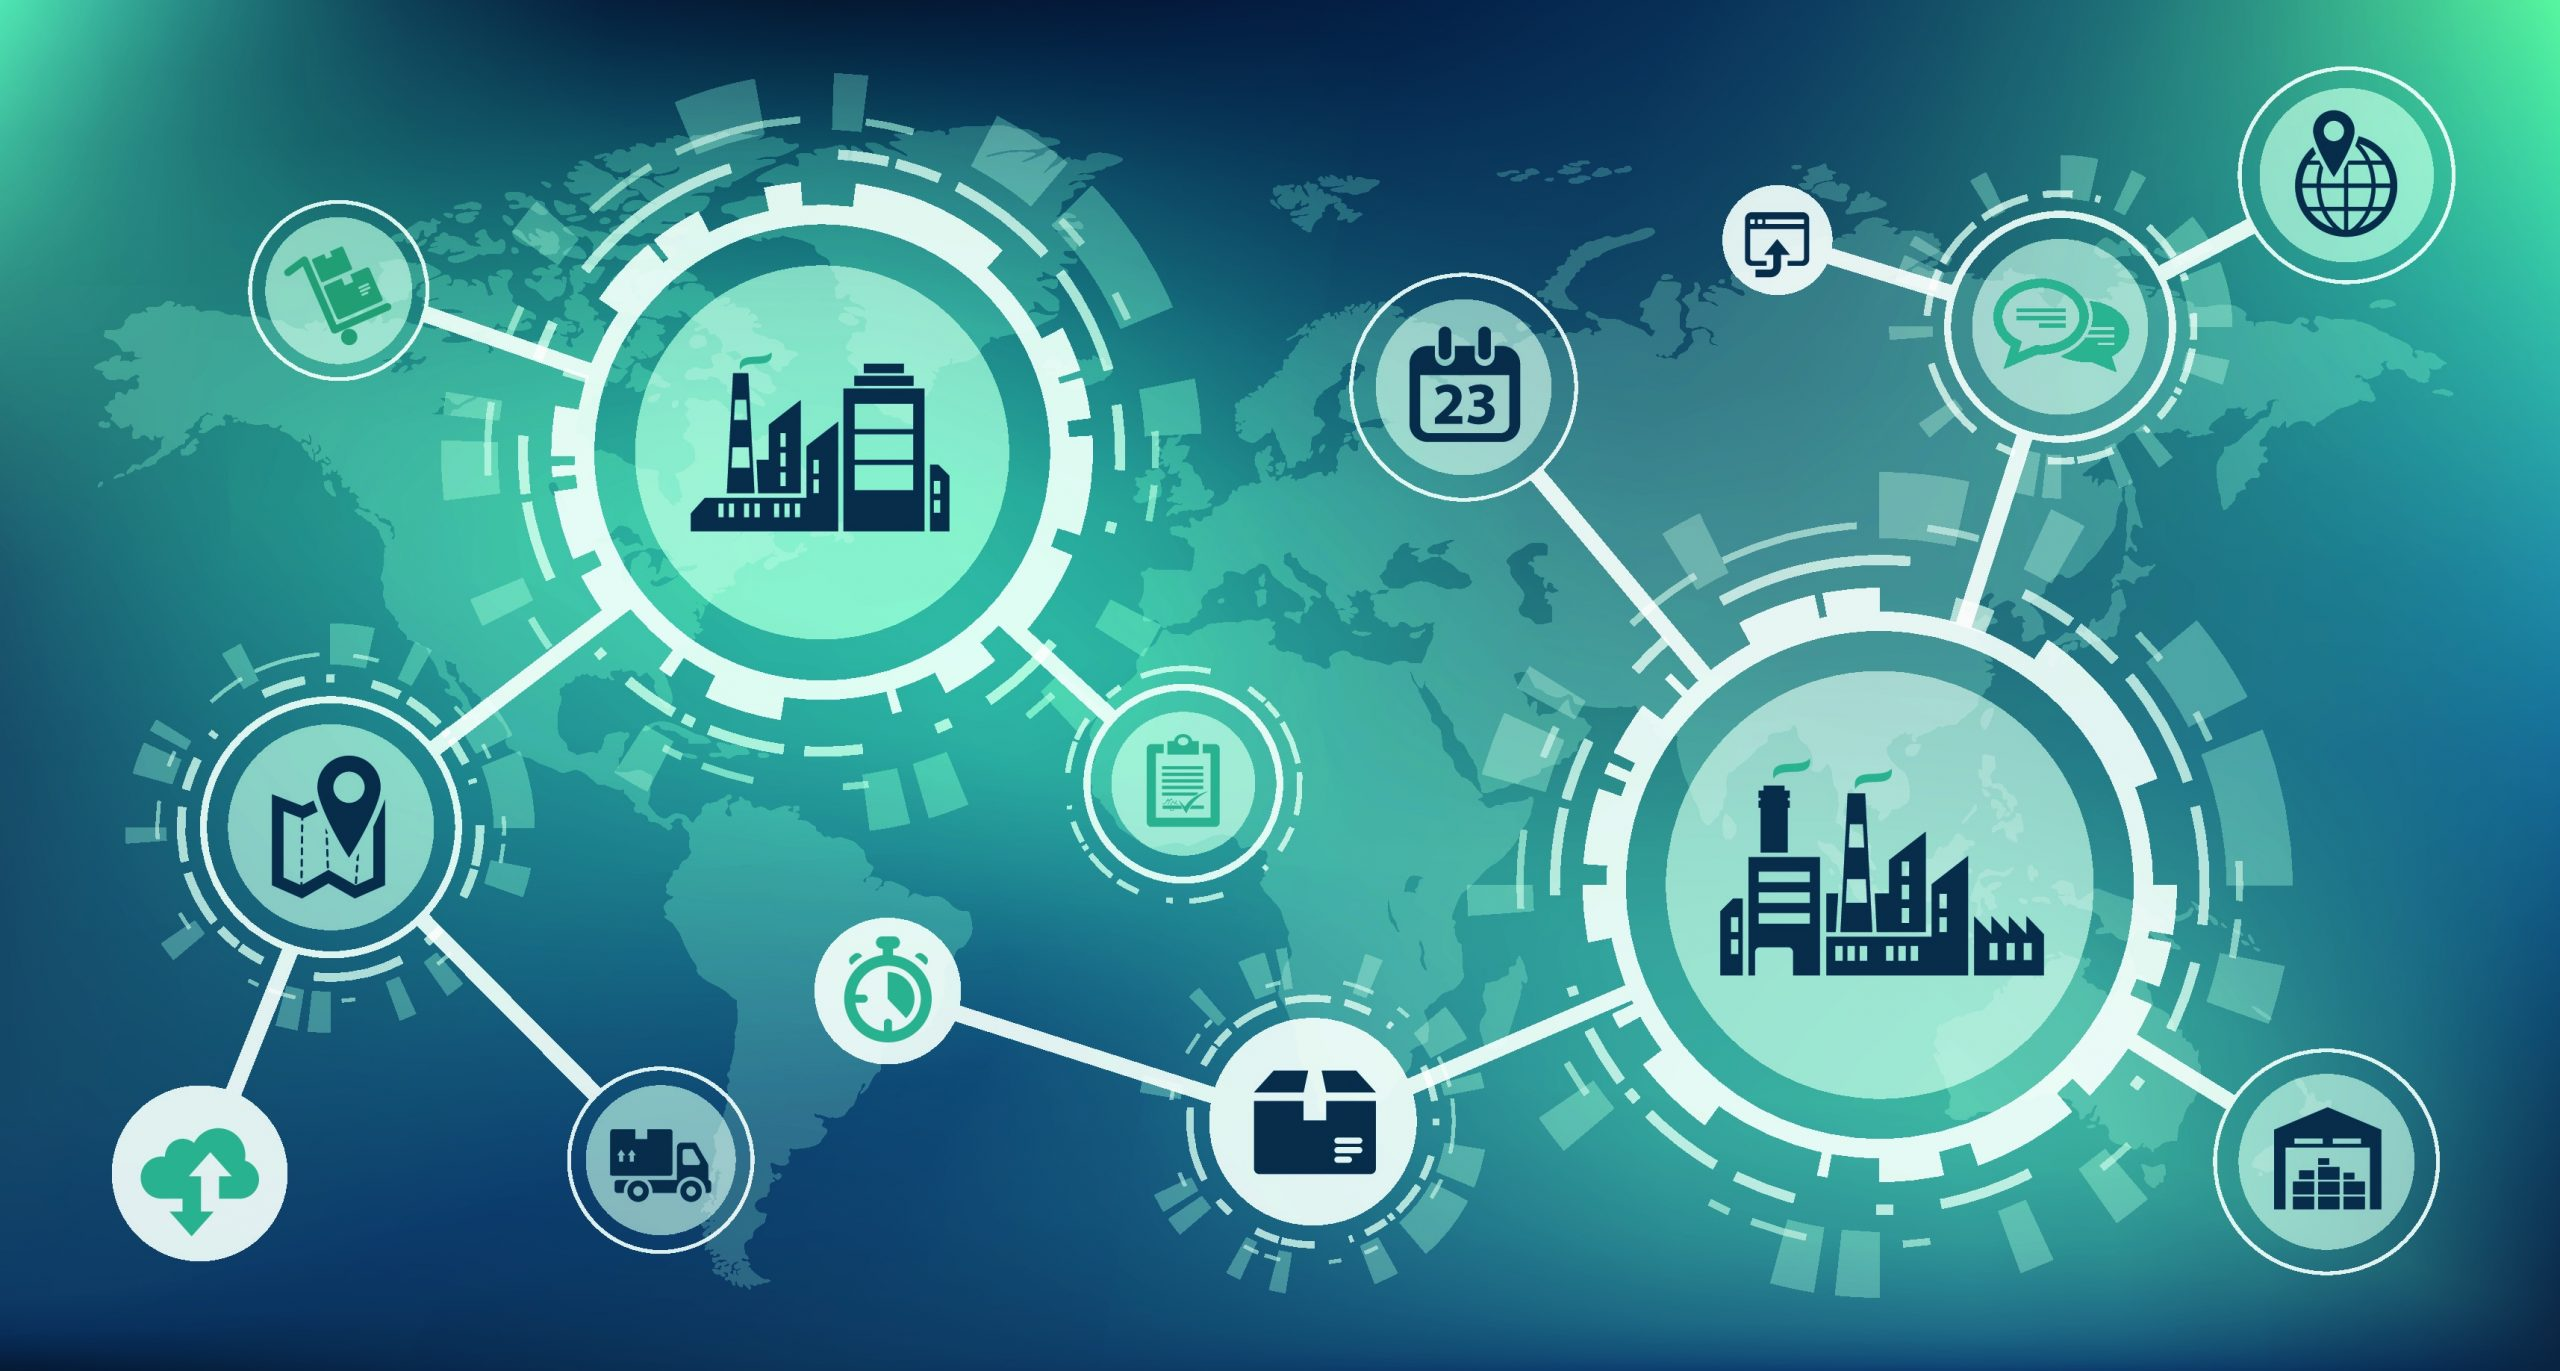 Managing Supply Chain Disruption Through A Combination Of Technology And Ingenuity